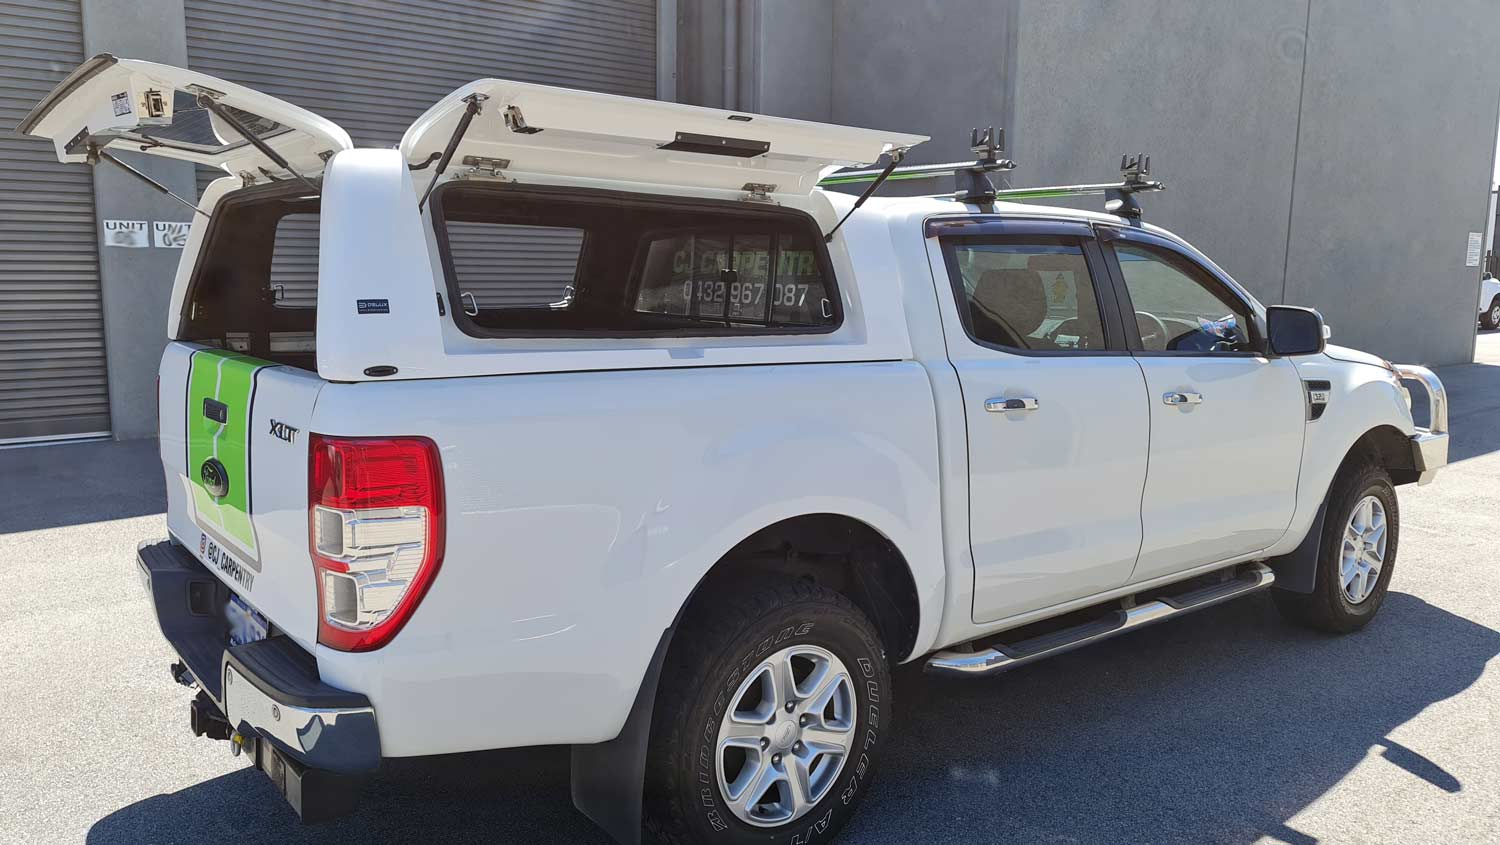 Force Pro Canopy on Ford Ranger 2016 - side view with open doors